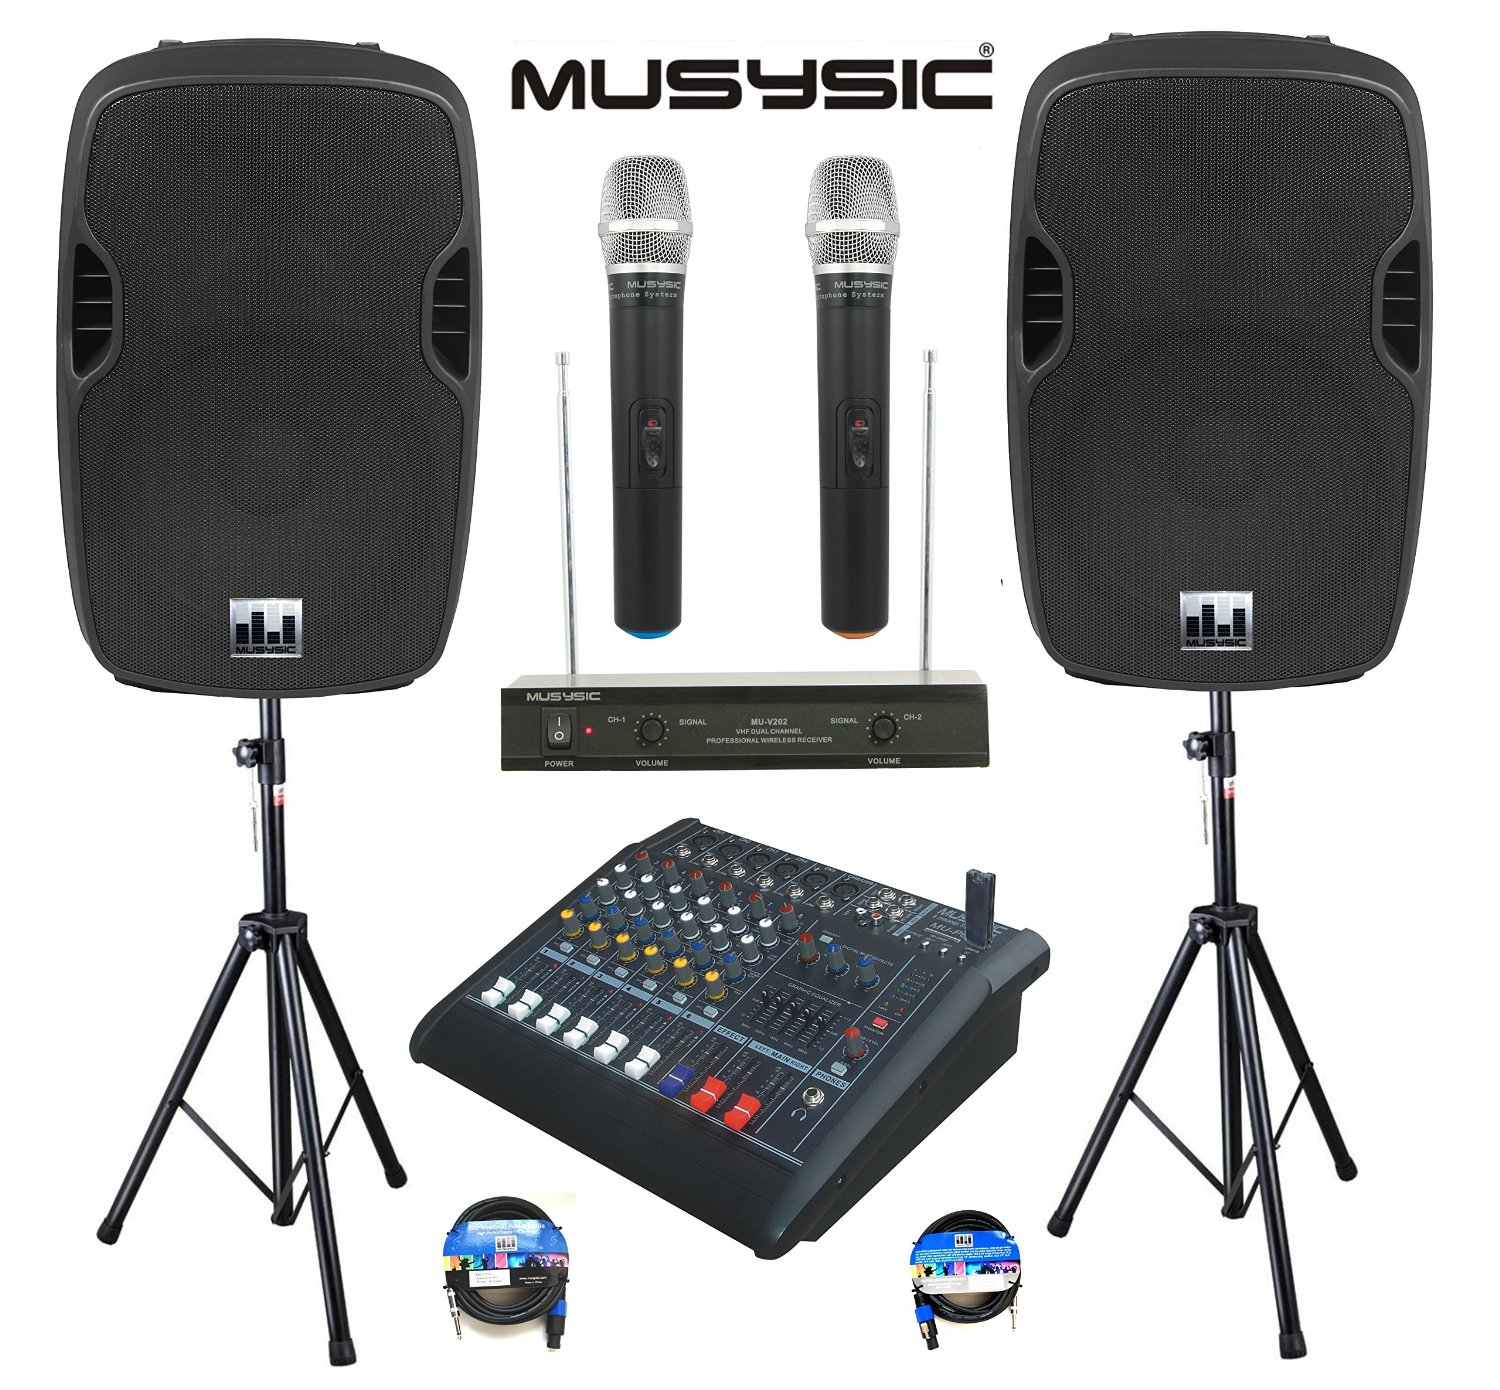 Complete Wireless PA System Package from MUSYSIC